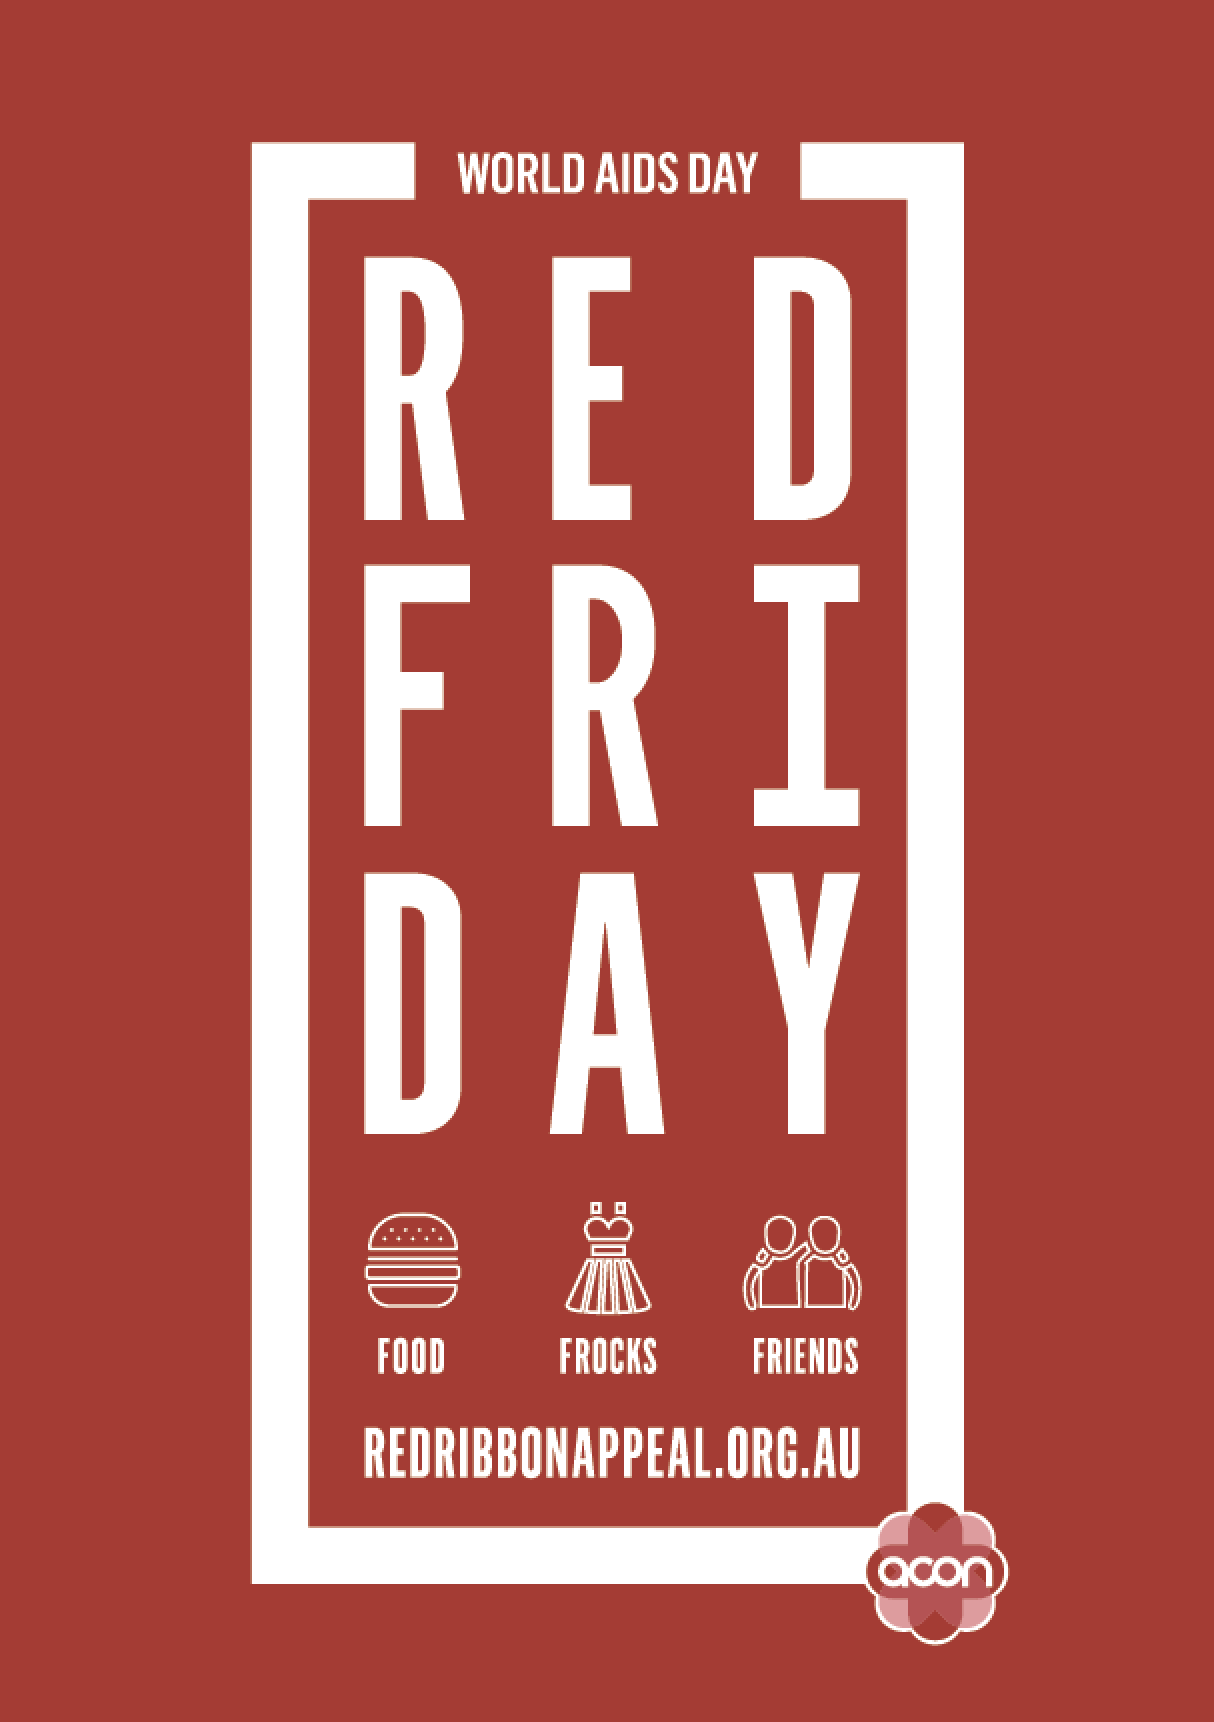 Red Friday - Poster 'Red Friday' (PDF)